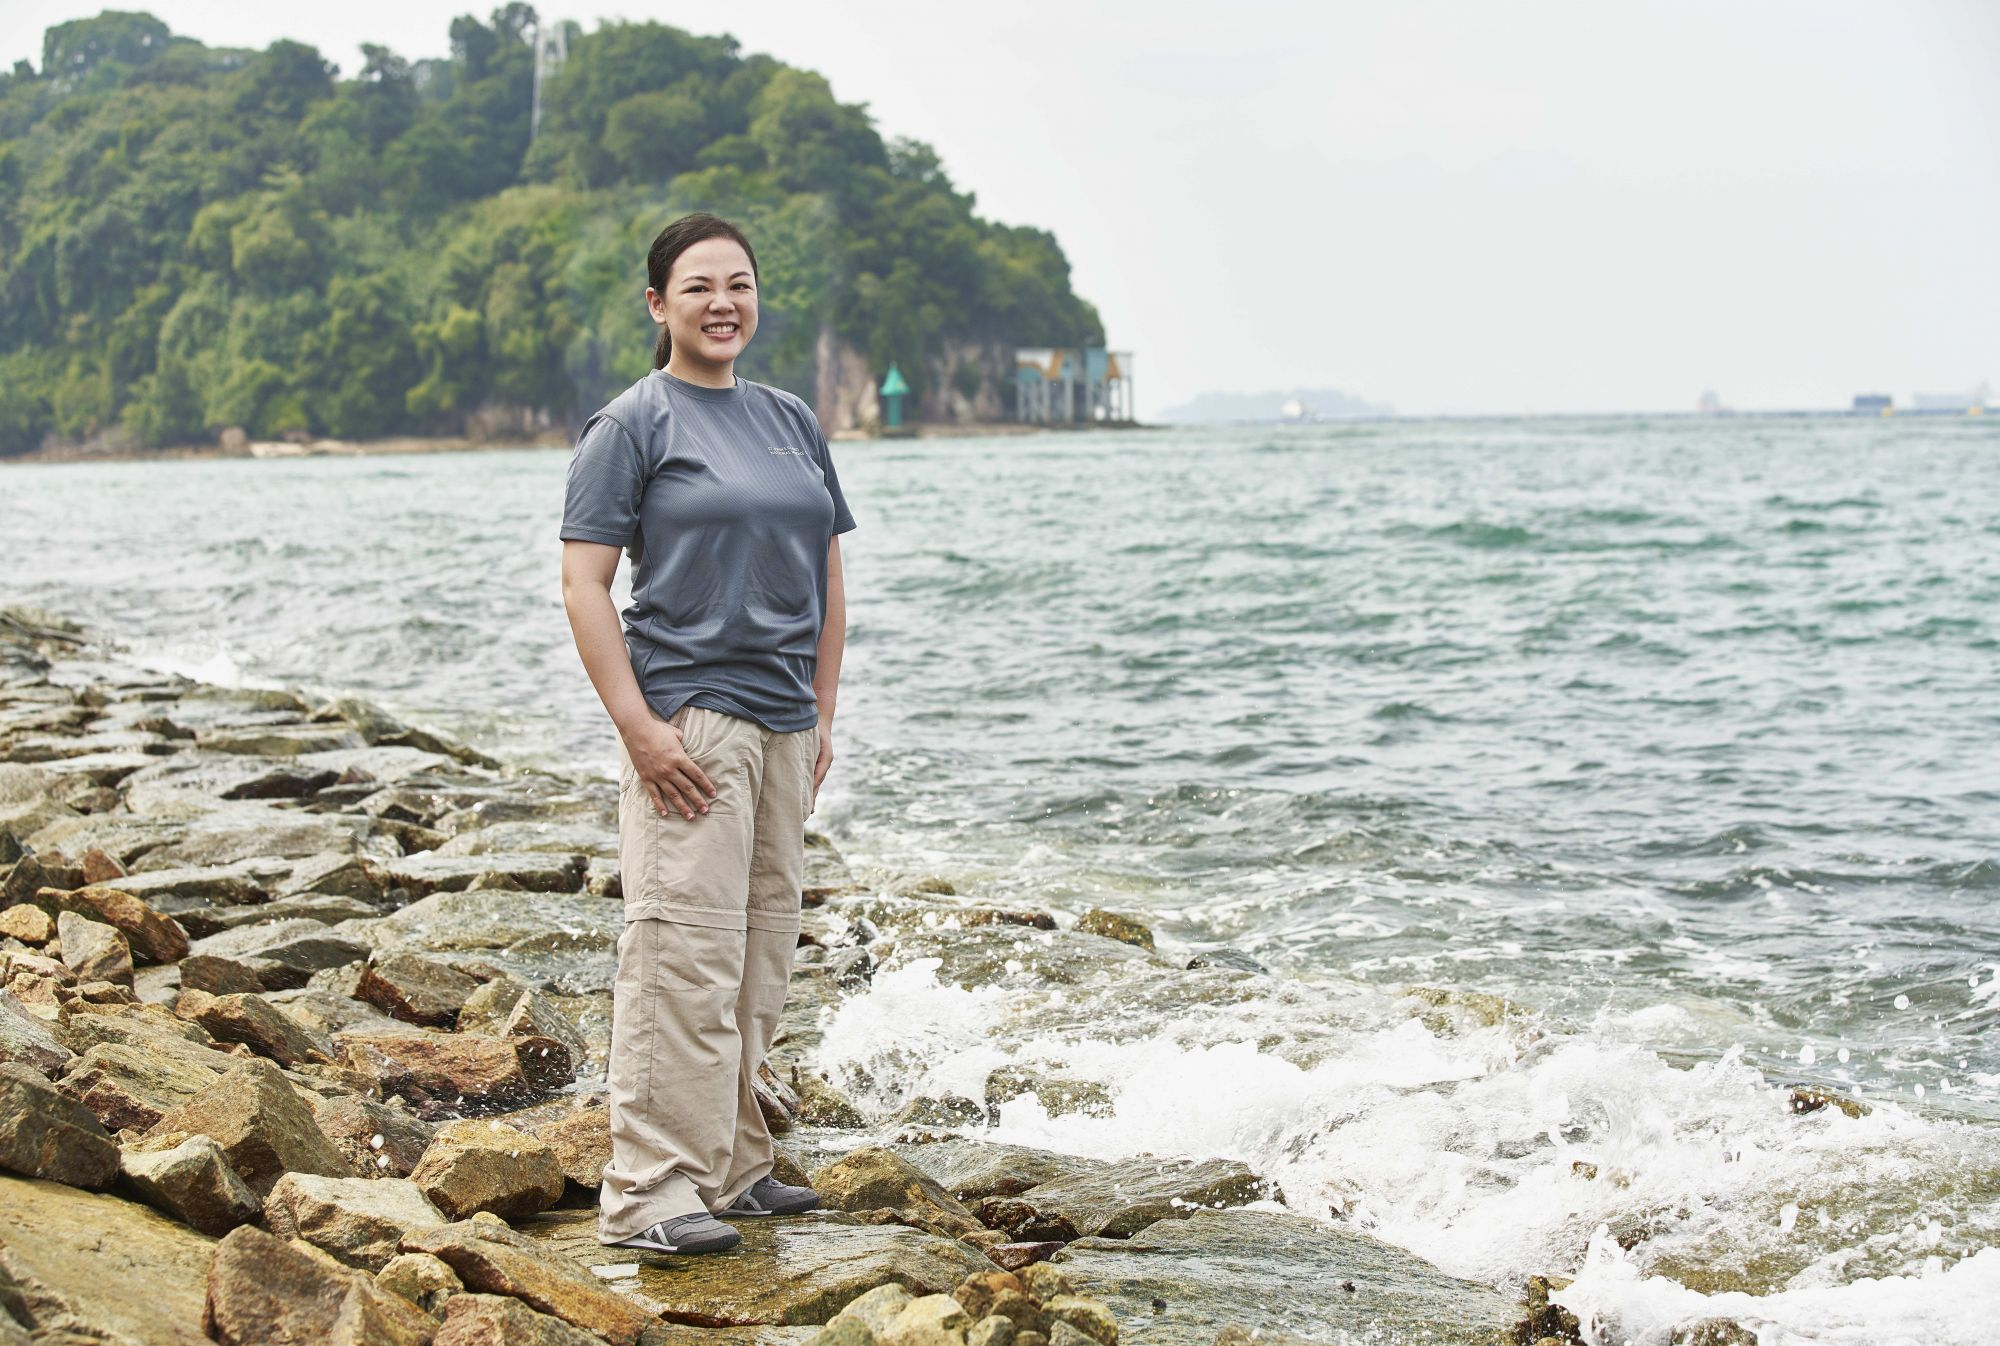 Rolex Perpetual Planet Campaign Inspires Marine Ecologist Neo Mei Lin To Do More For Planet Earth